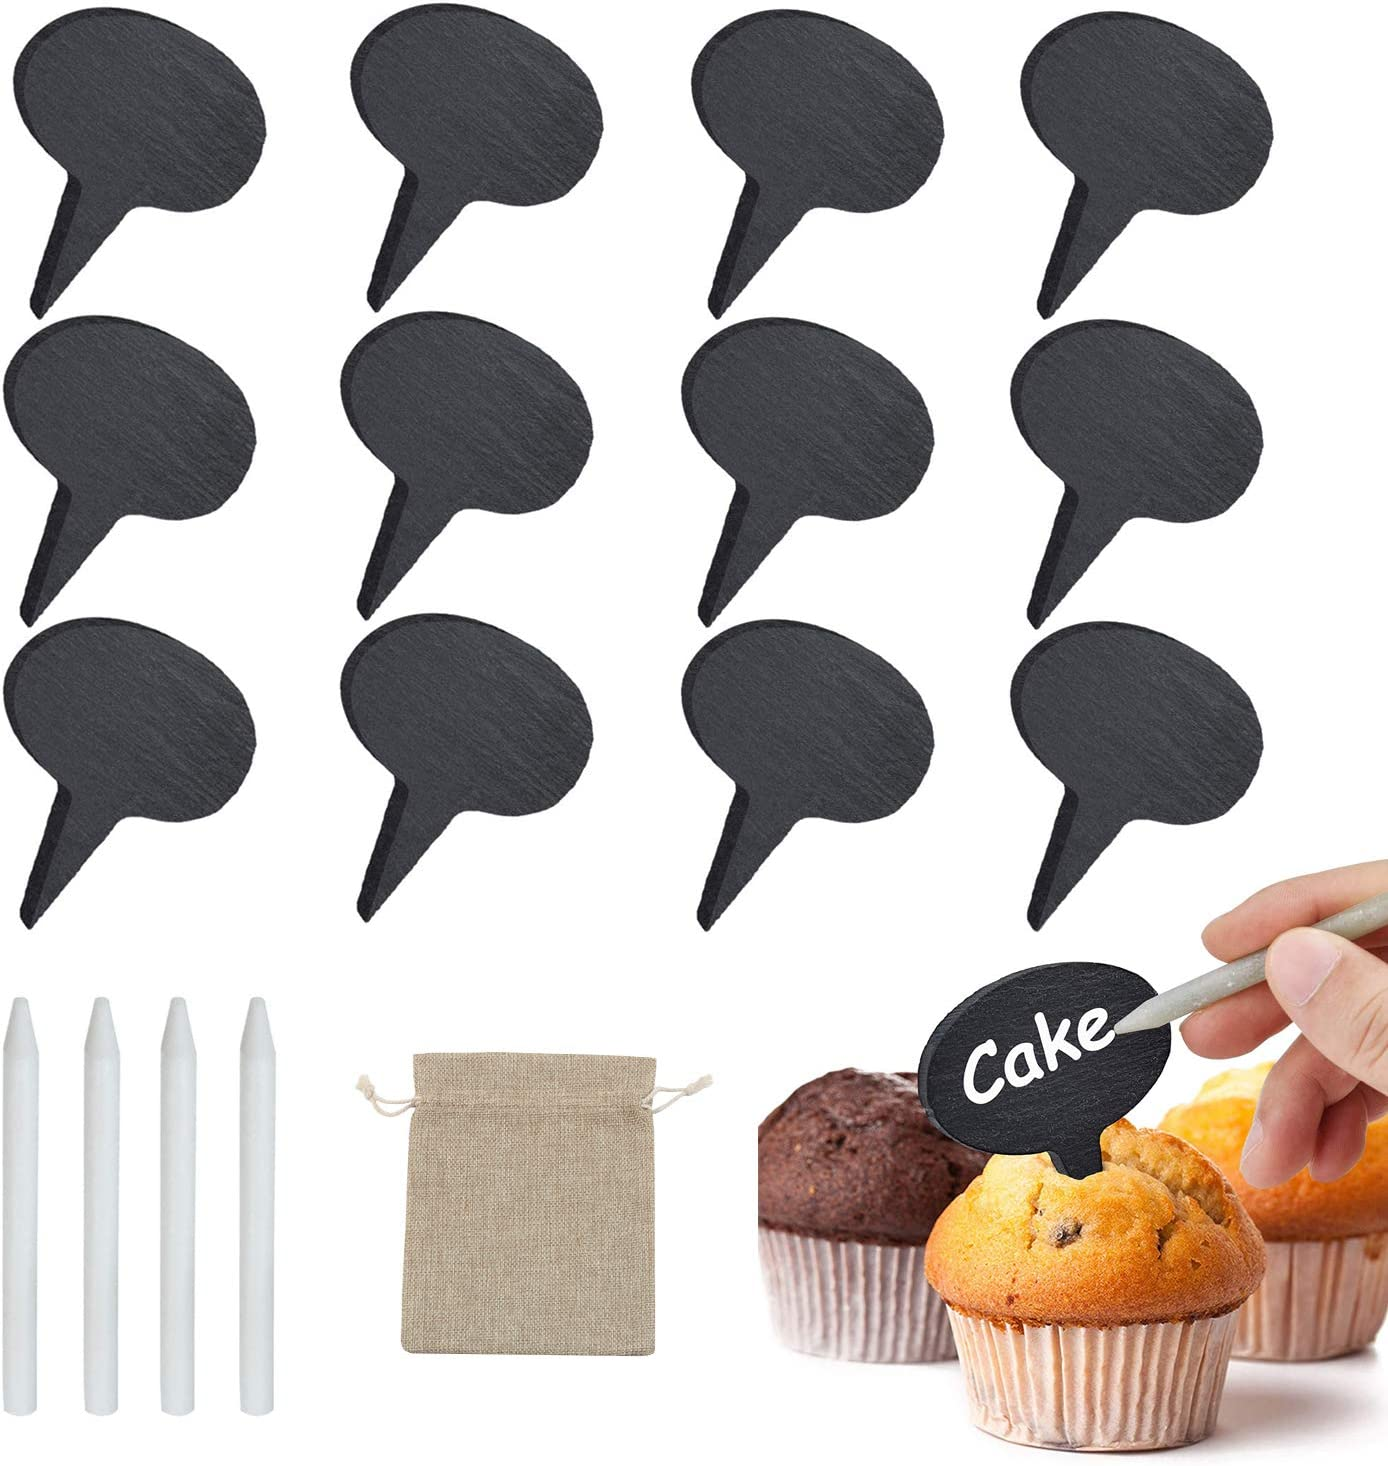 Cheese Markers Set, Natural Chalkboard Picks Cupcake Toppers, Cheese Name Tag for Birthdays, Weddings, Elegant Events with 12 Slate Cheese Labels & 4 Soapstone Chalks & 1 Burlap Bag